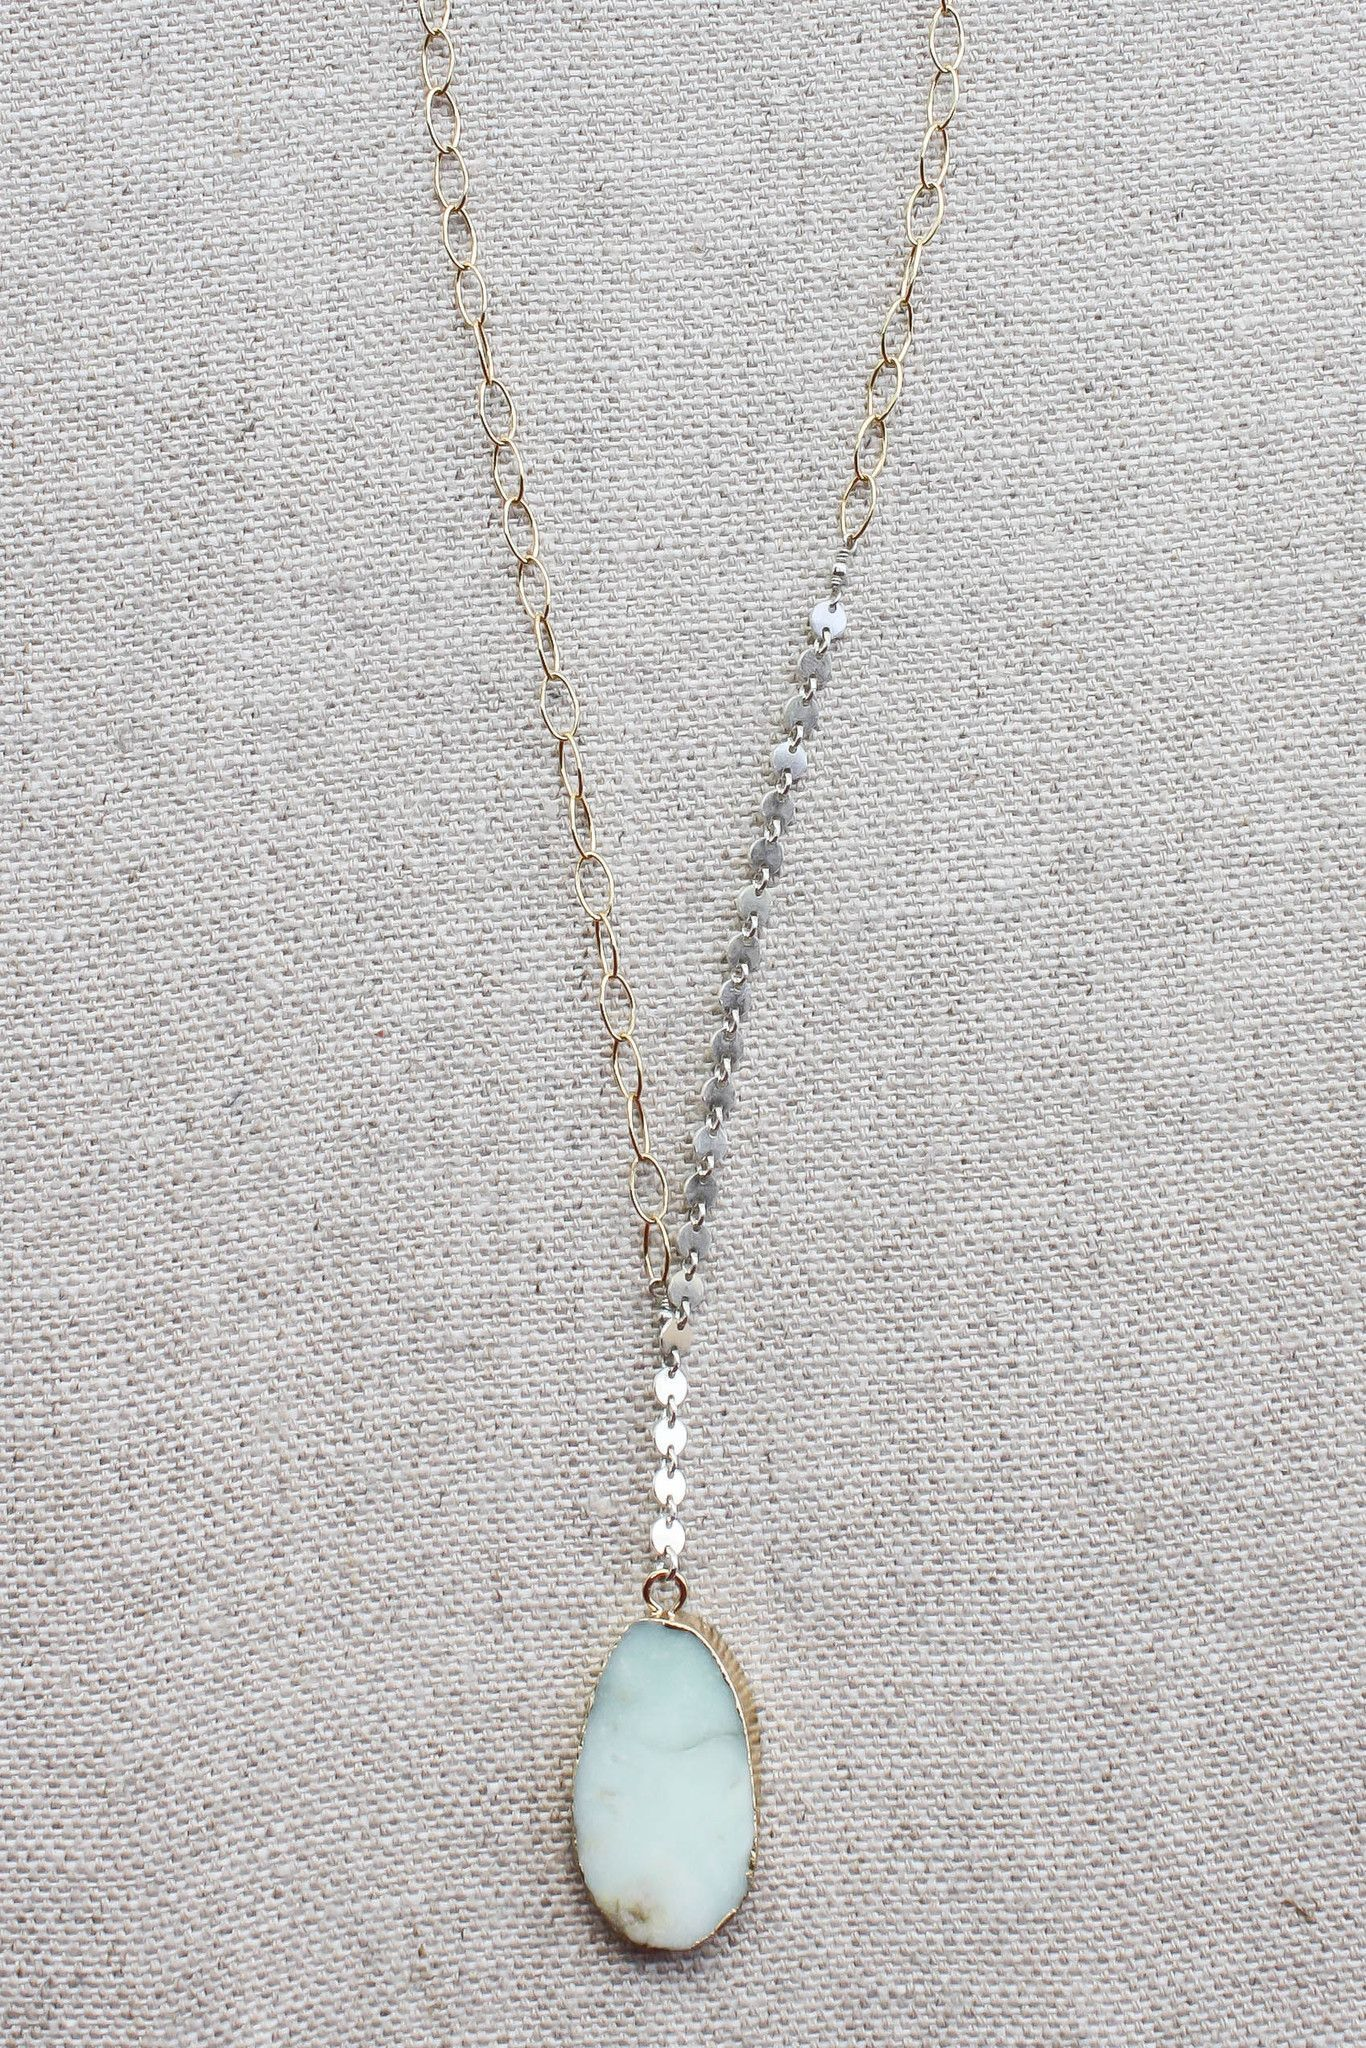 B. Alli Light Turquoise Y Necklace